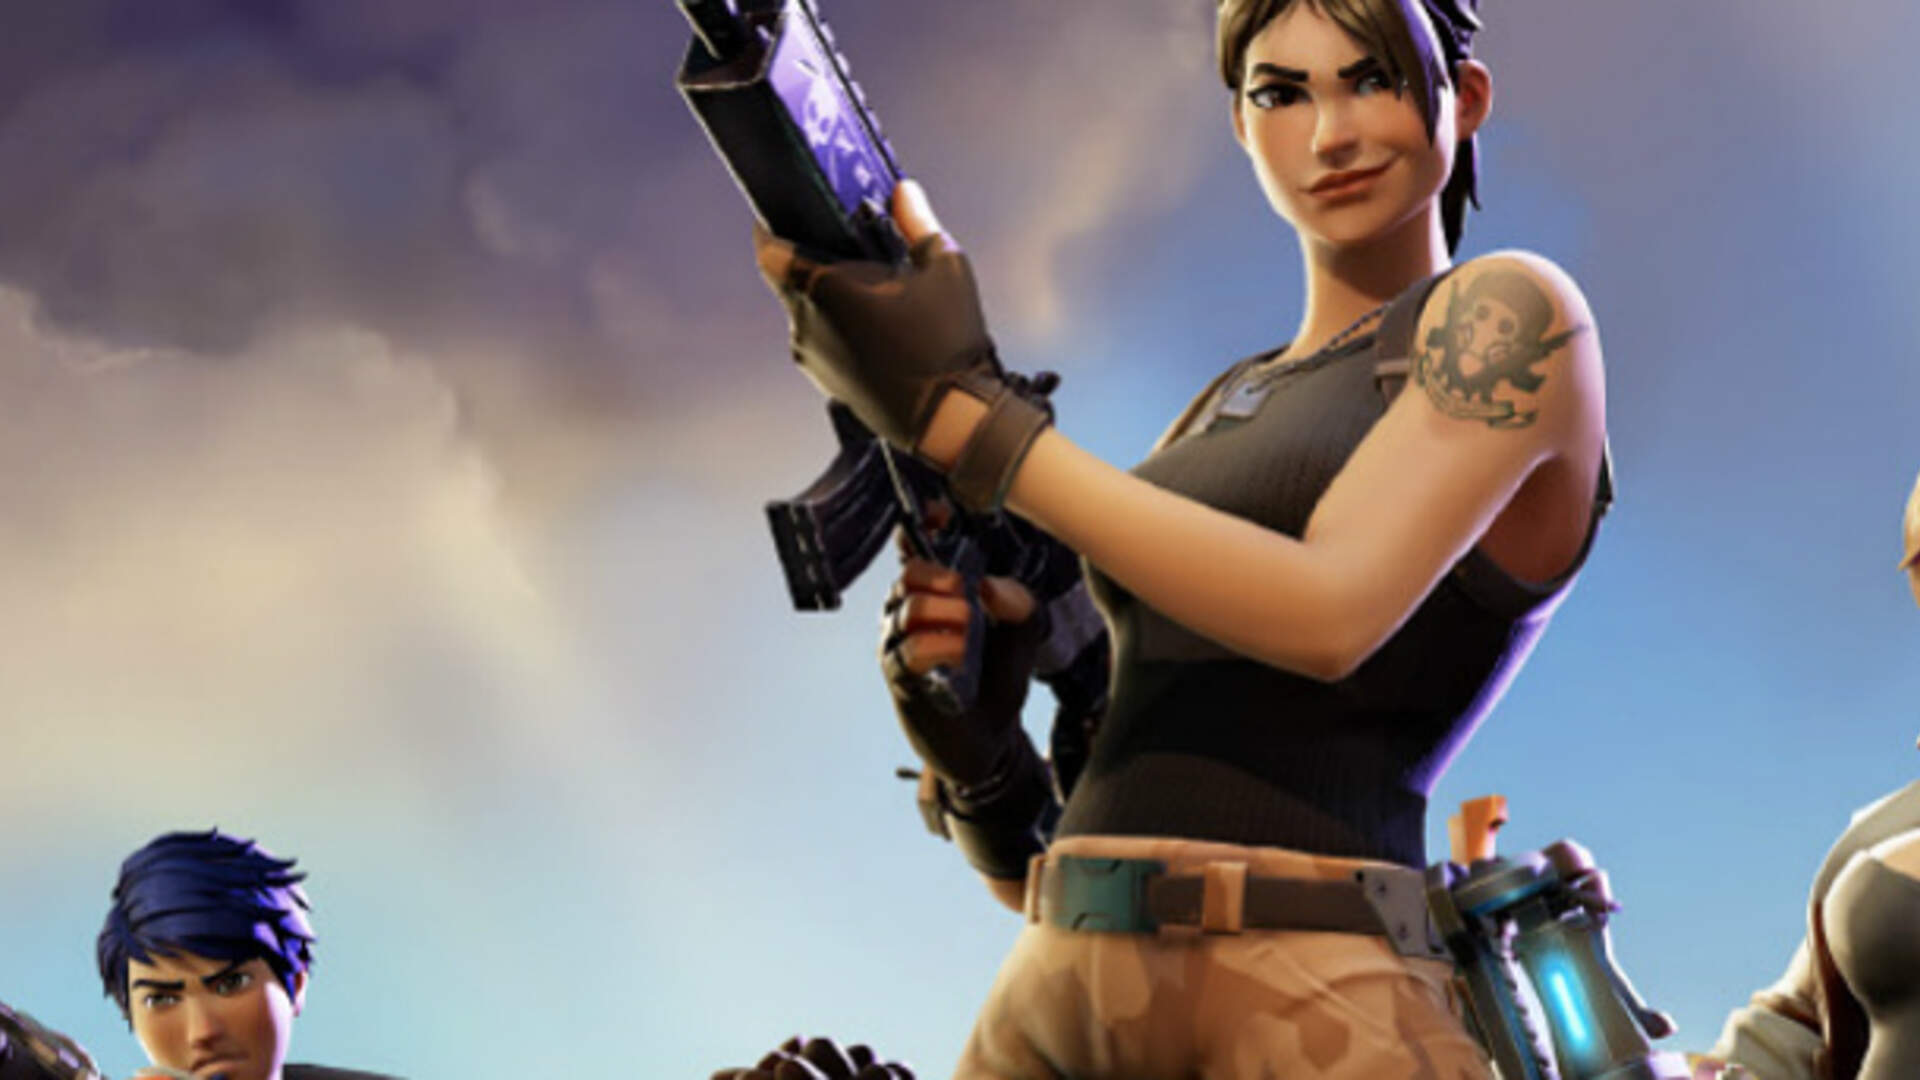 The Fortnite 3.2 Patch is Prompting a Mass Revolt by Players